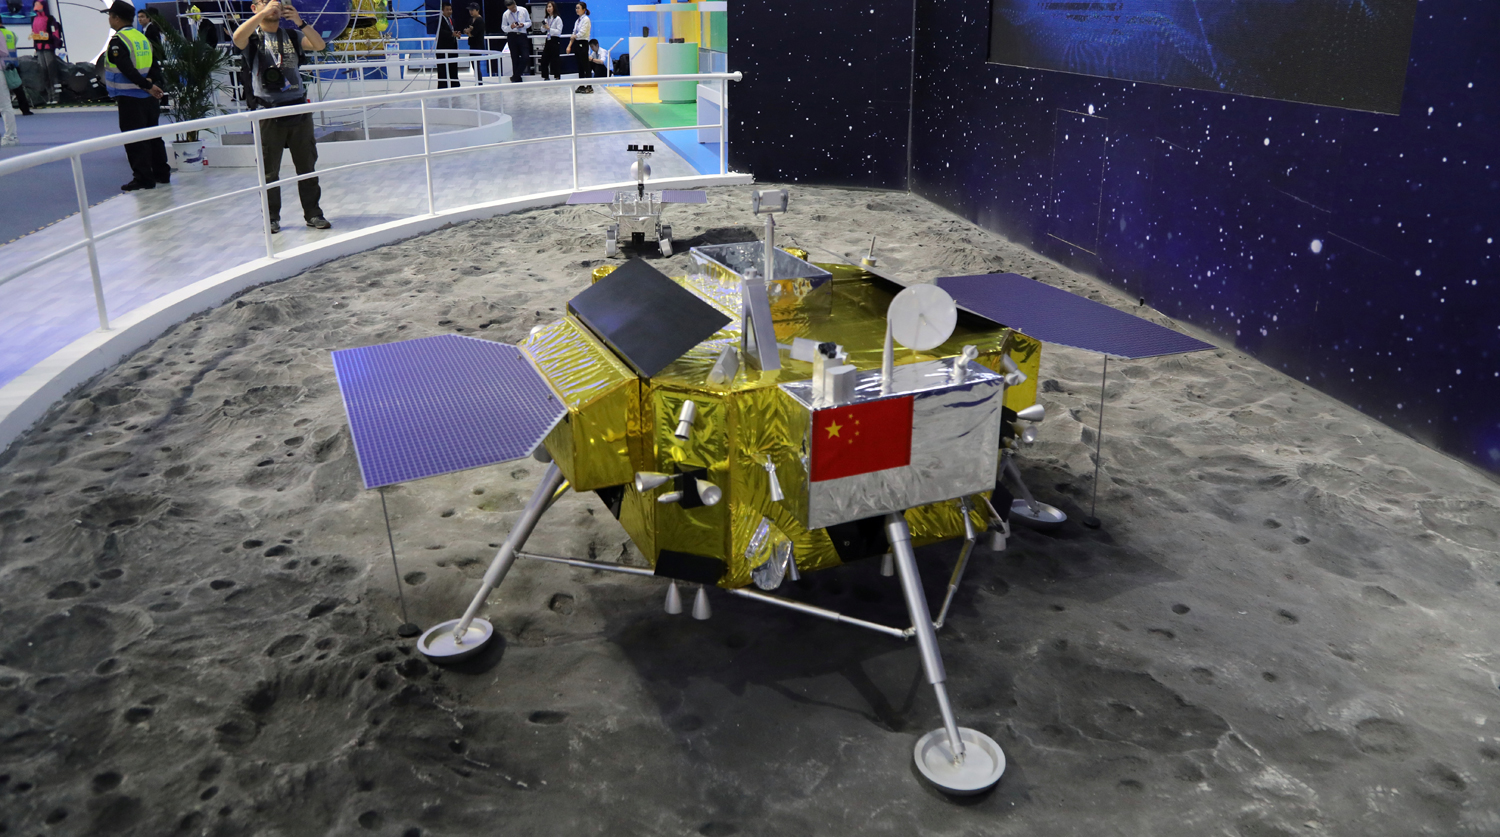 china space agency - 900×506